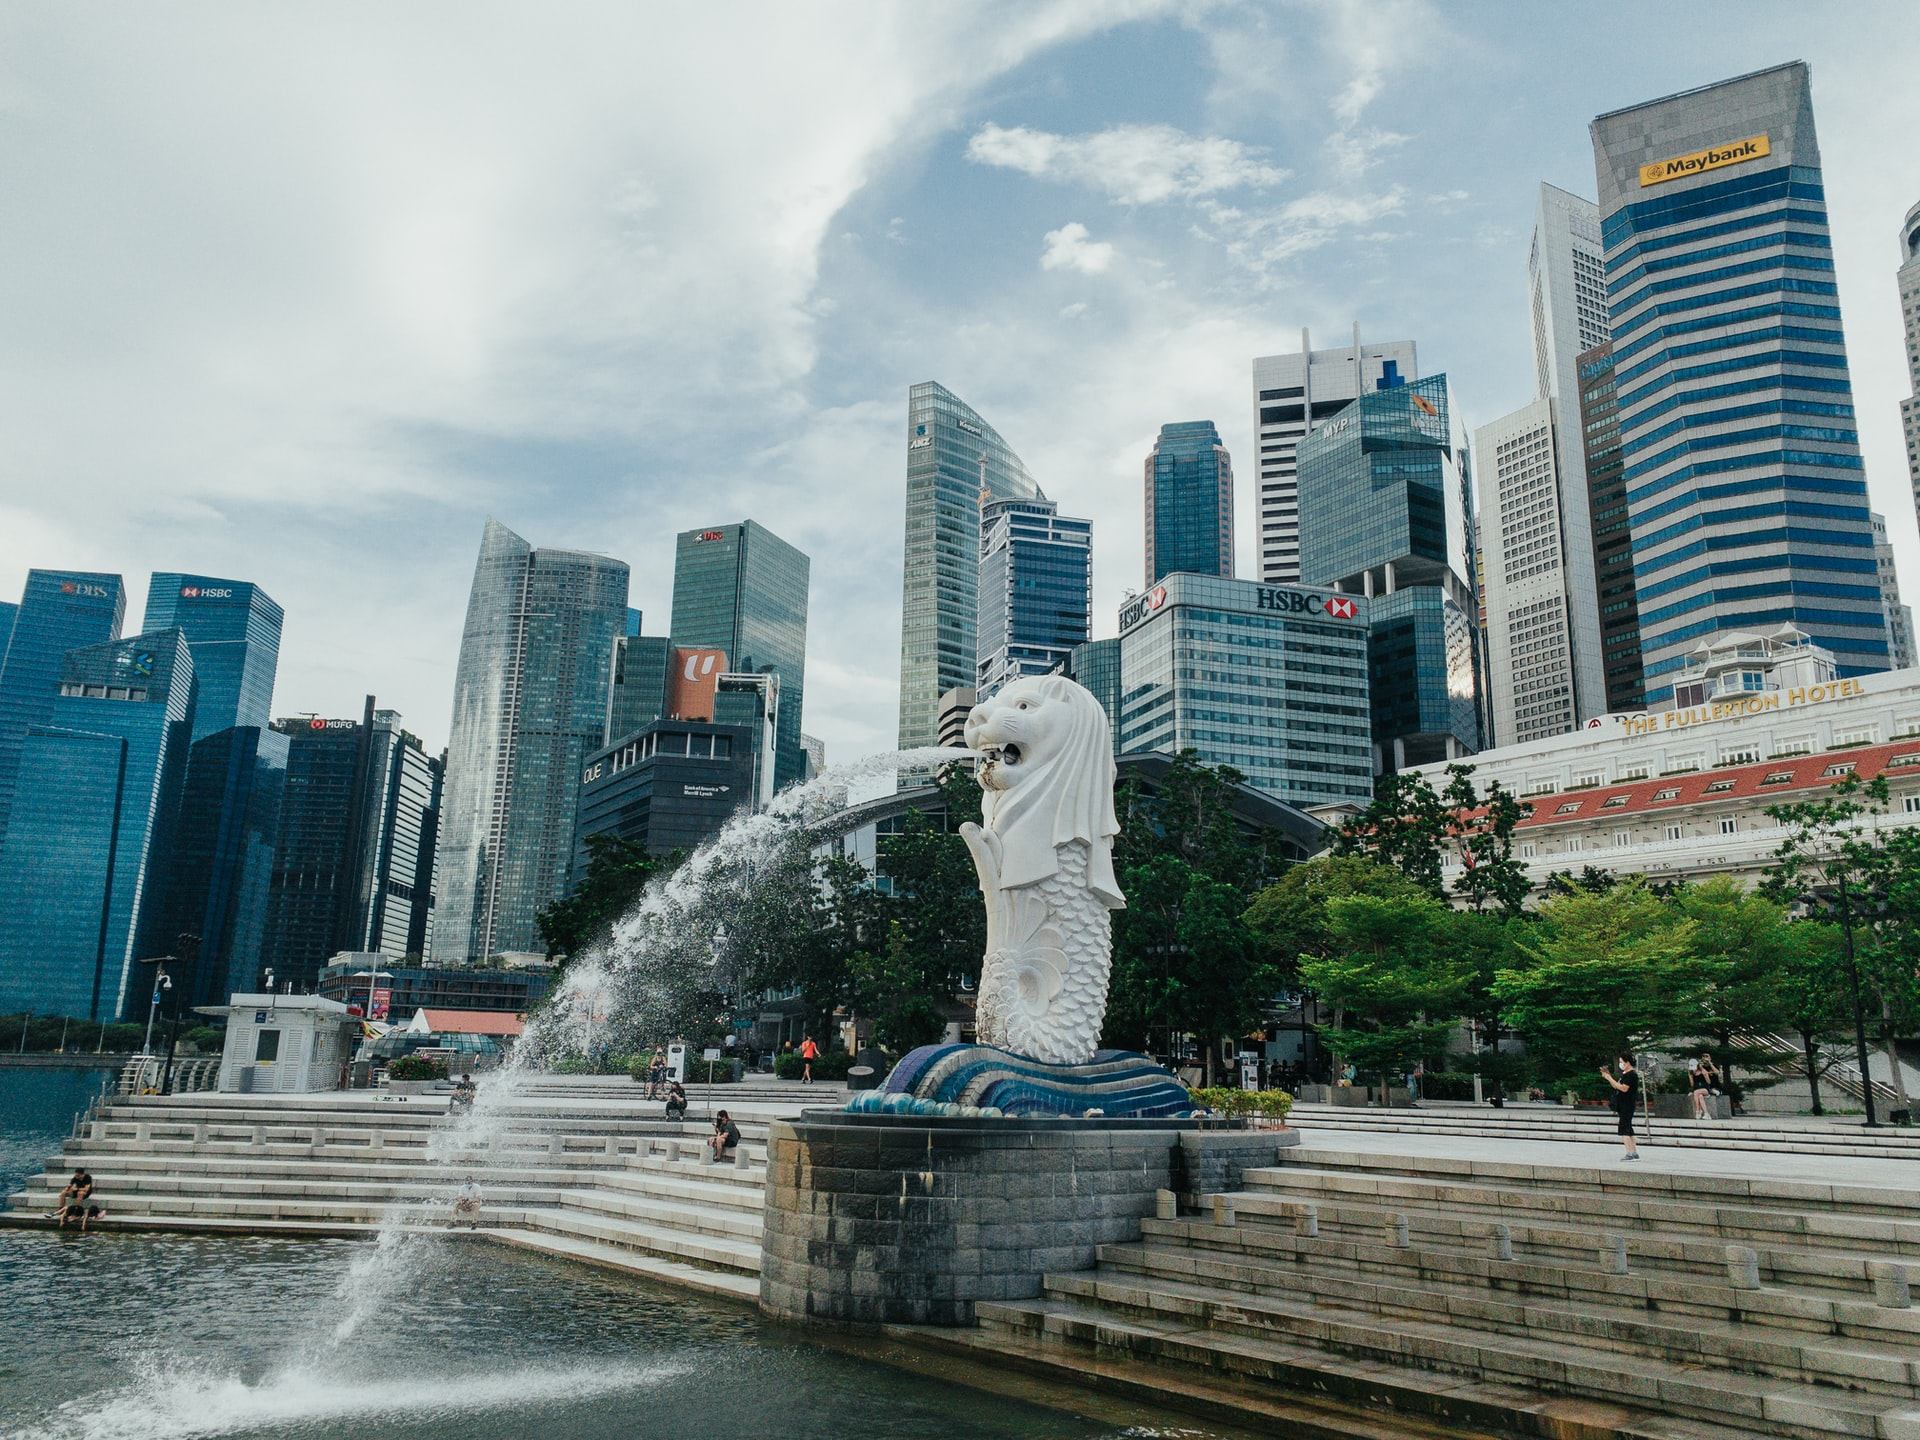 The Singapore High Court has blocked dozens of illicit streaming sites